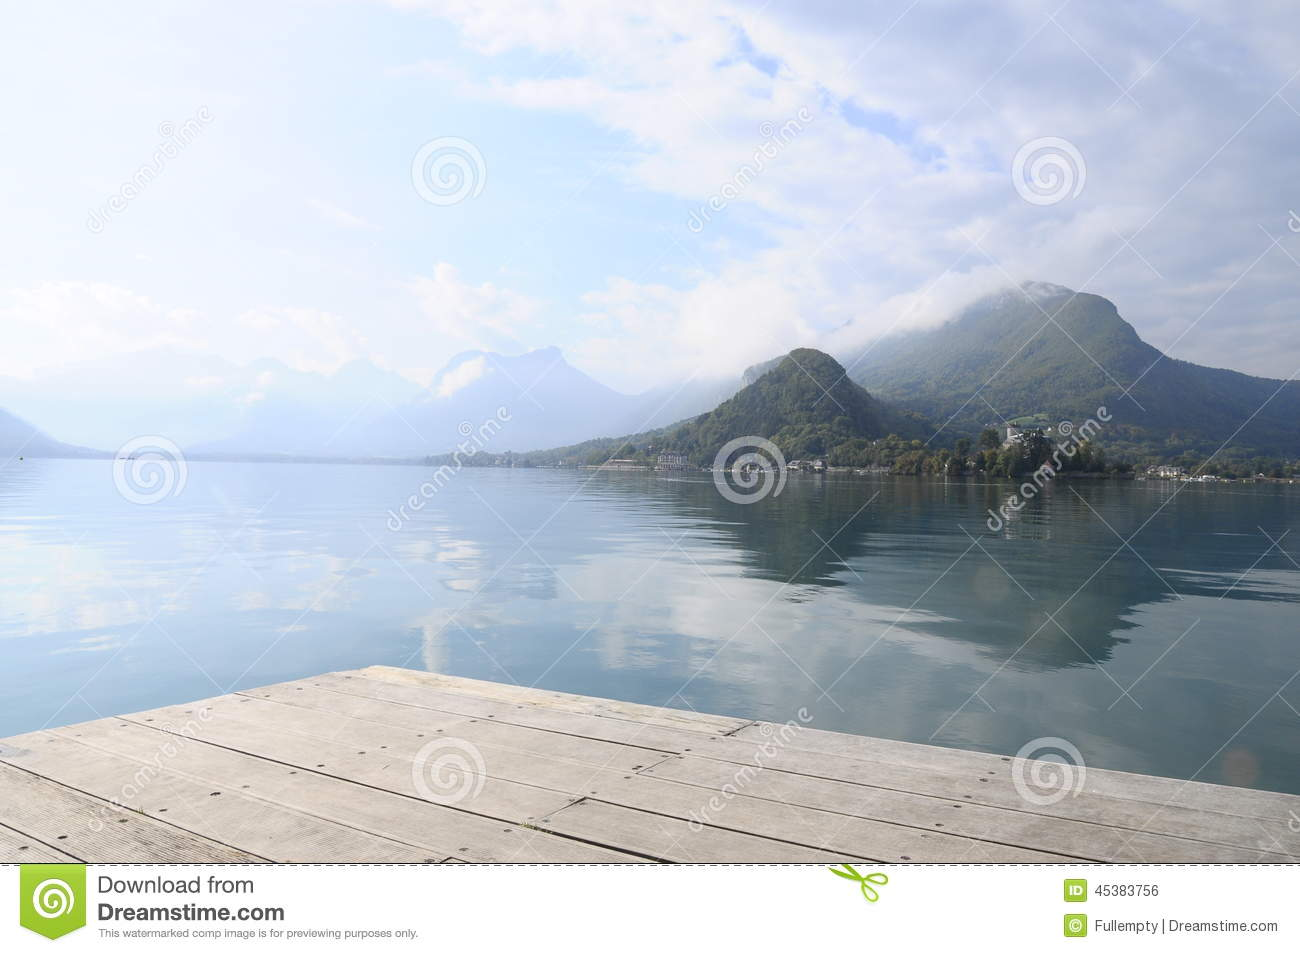 Annecy lake at Talloires, France